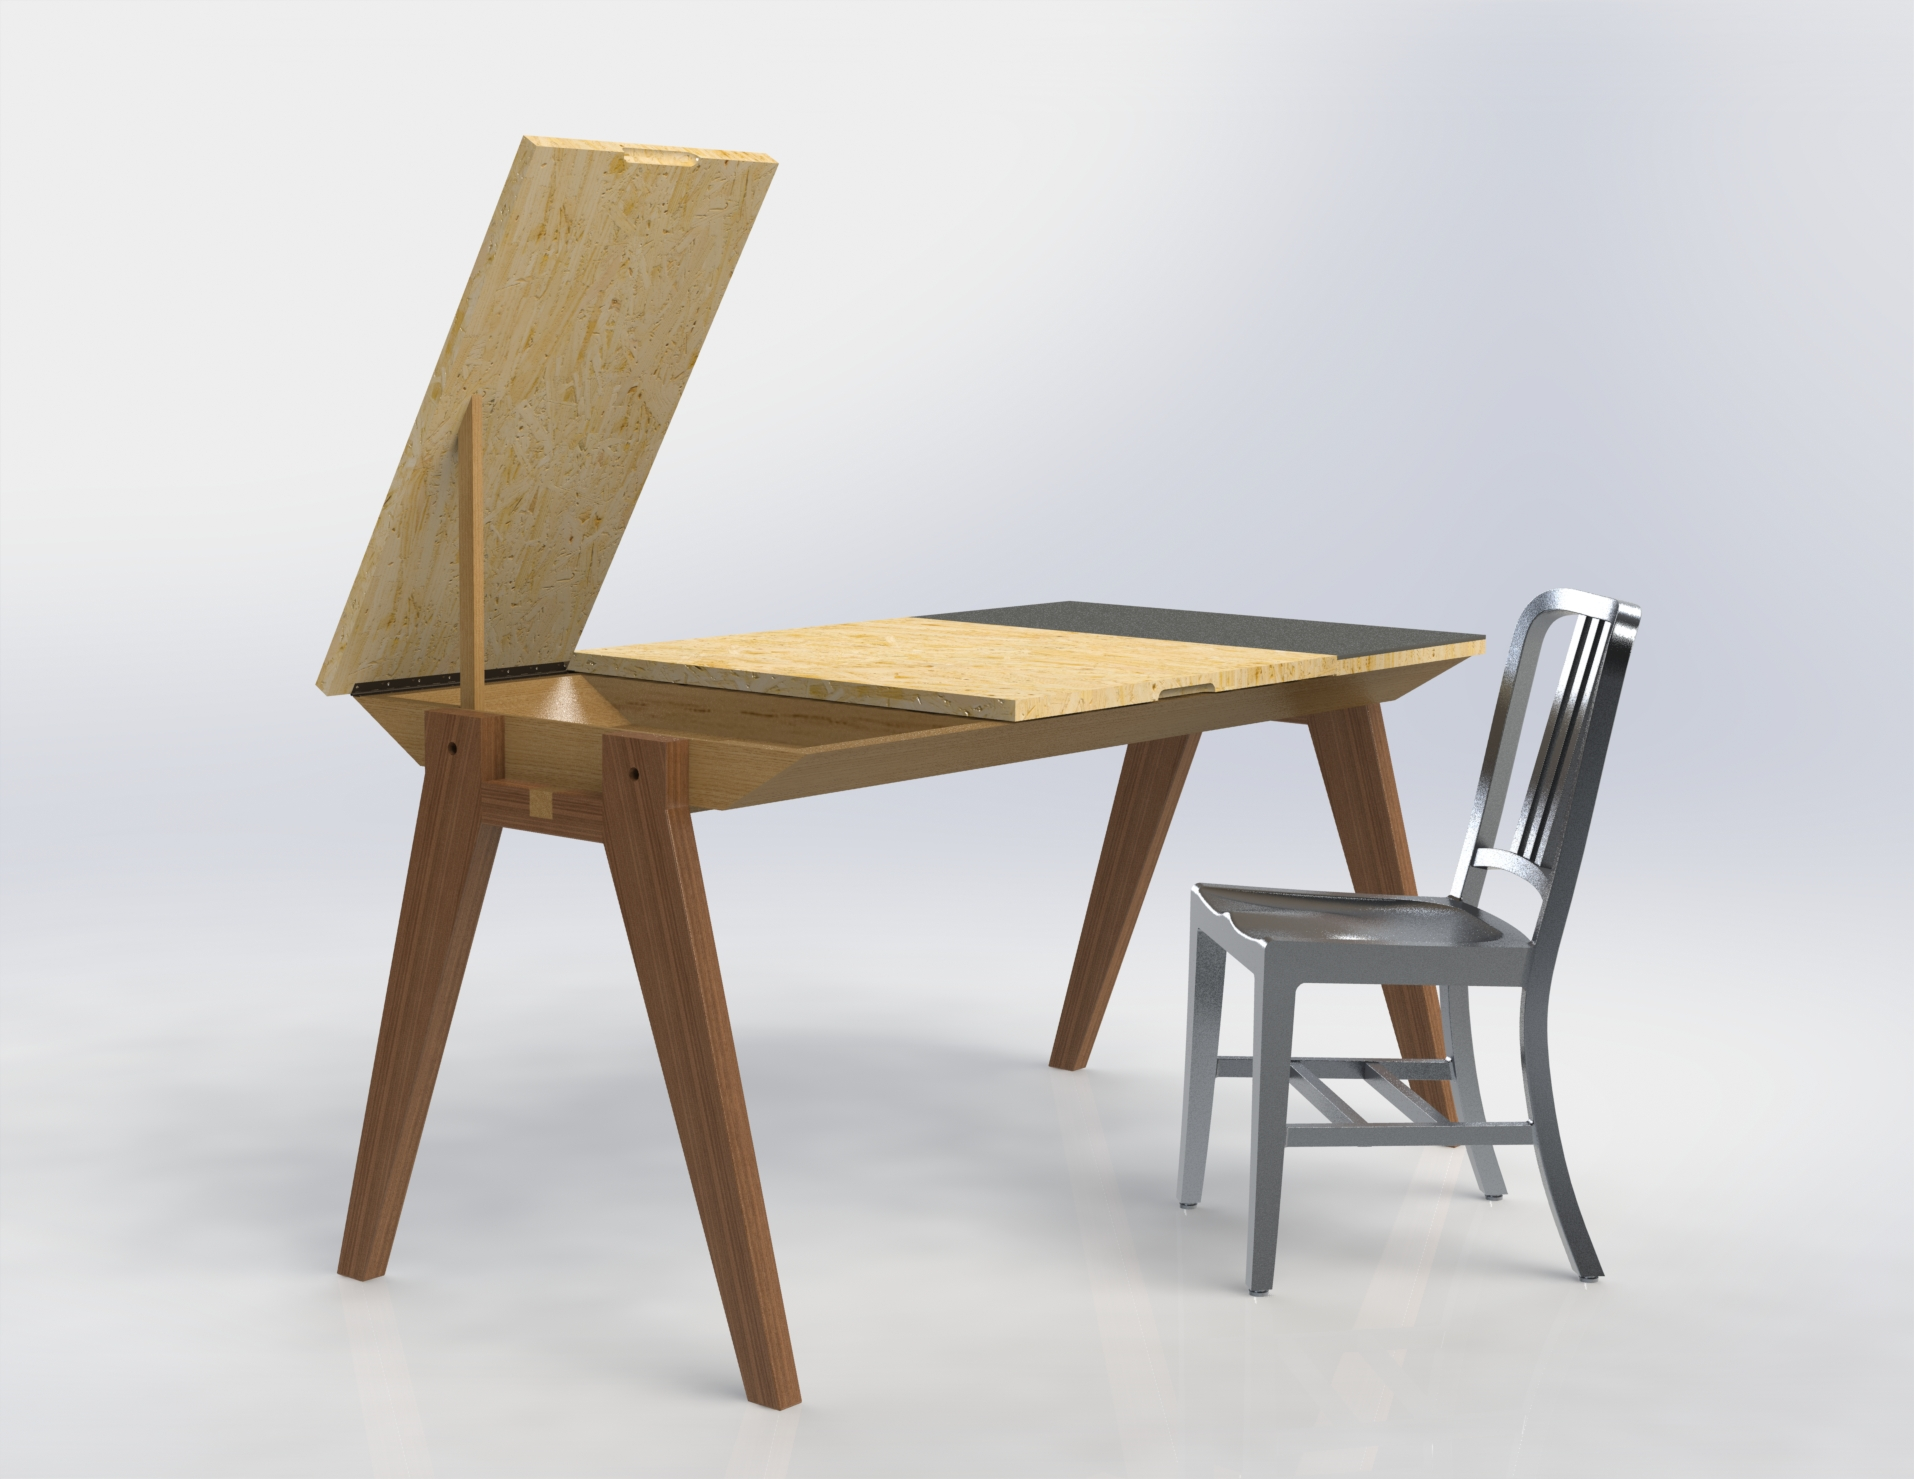 Furniture - Woodworking